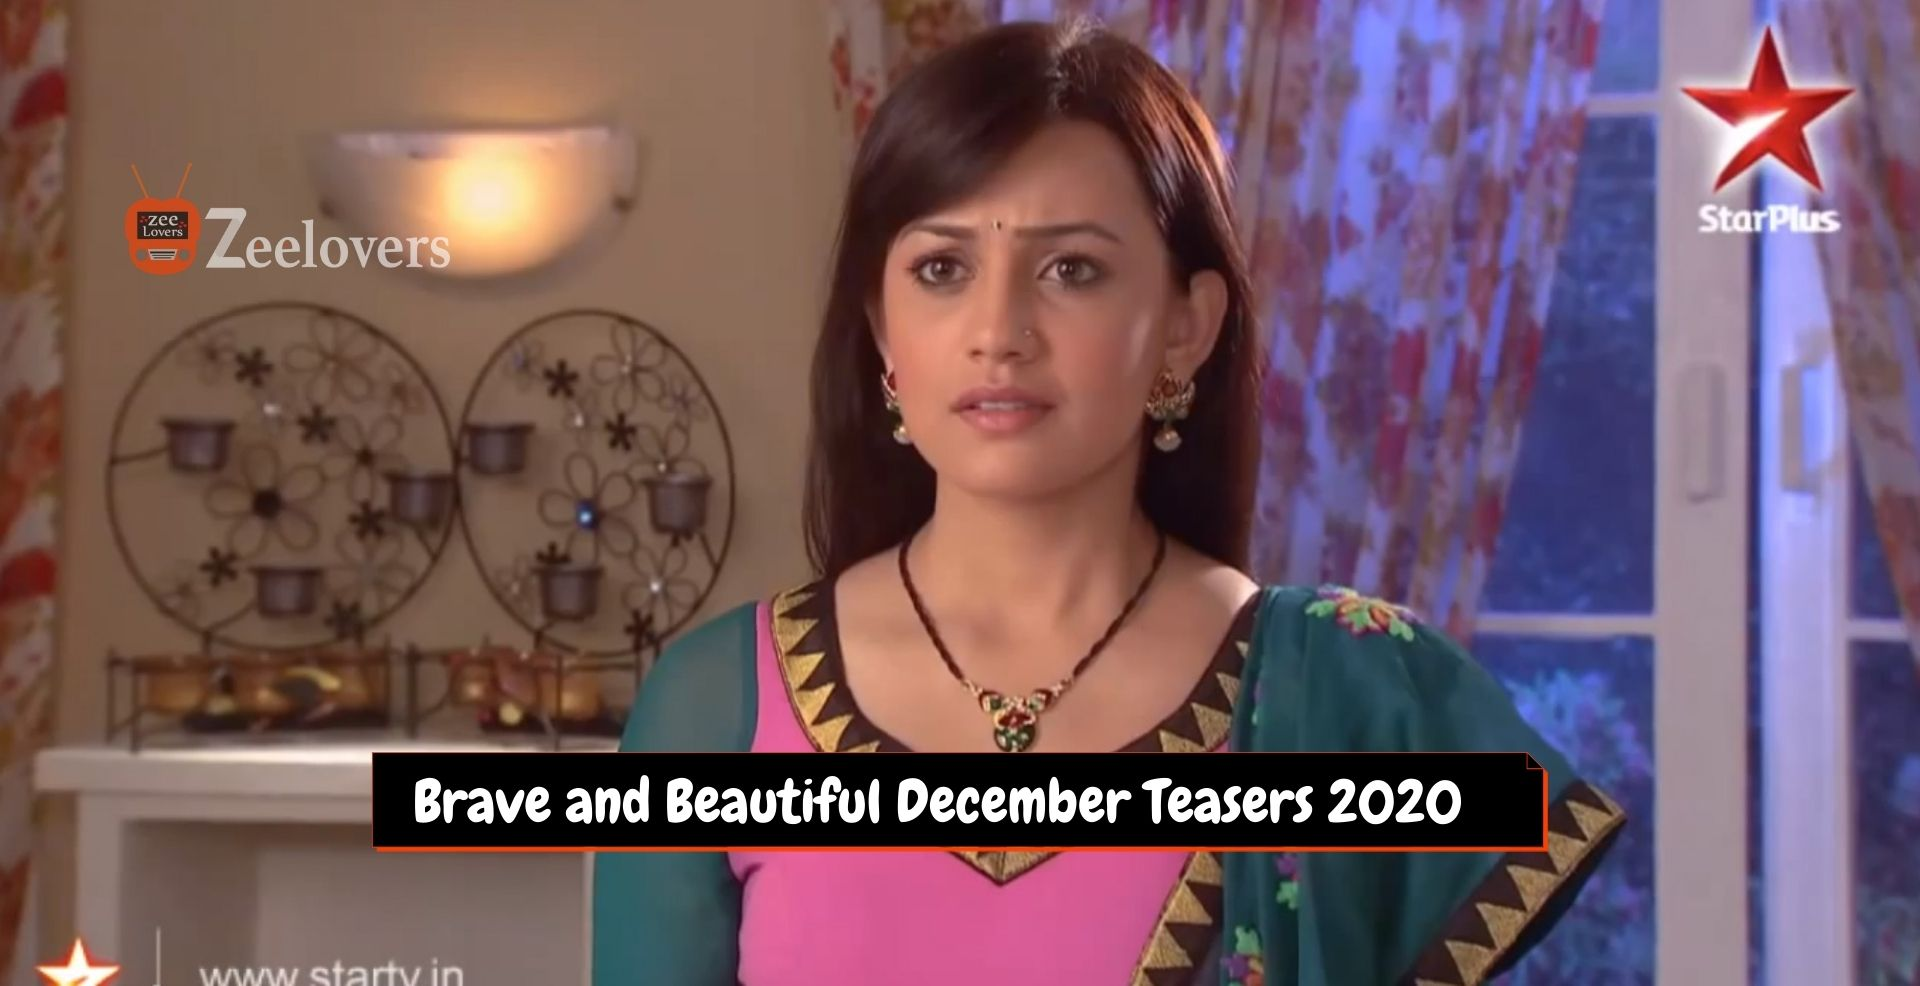 Brave and Beautiful December Teasers 2020